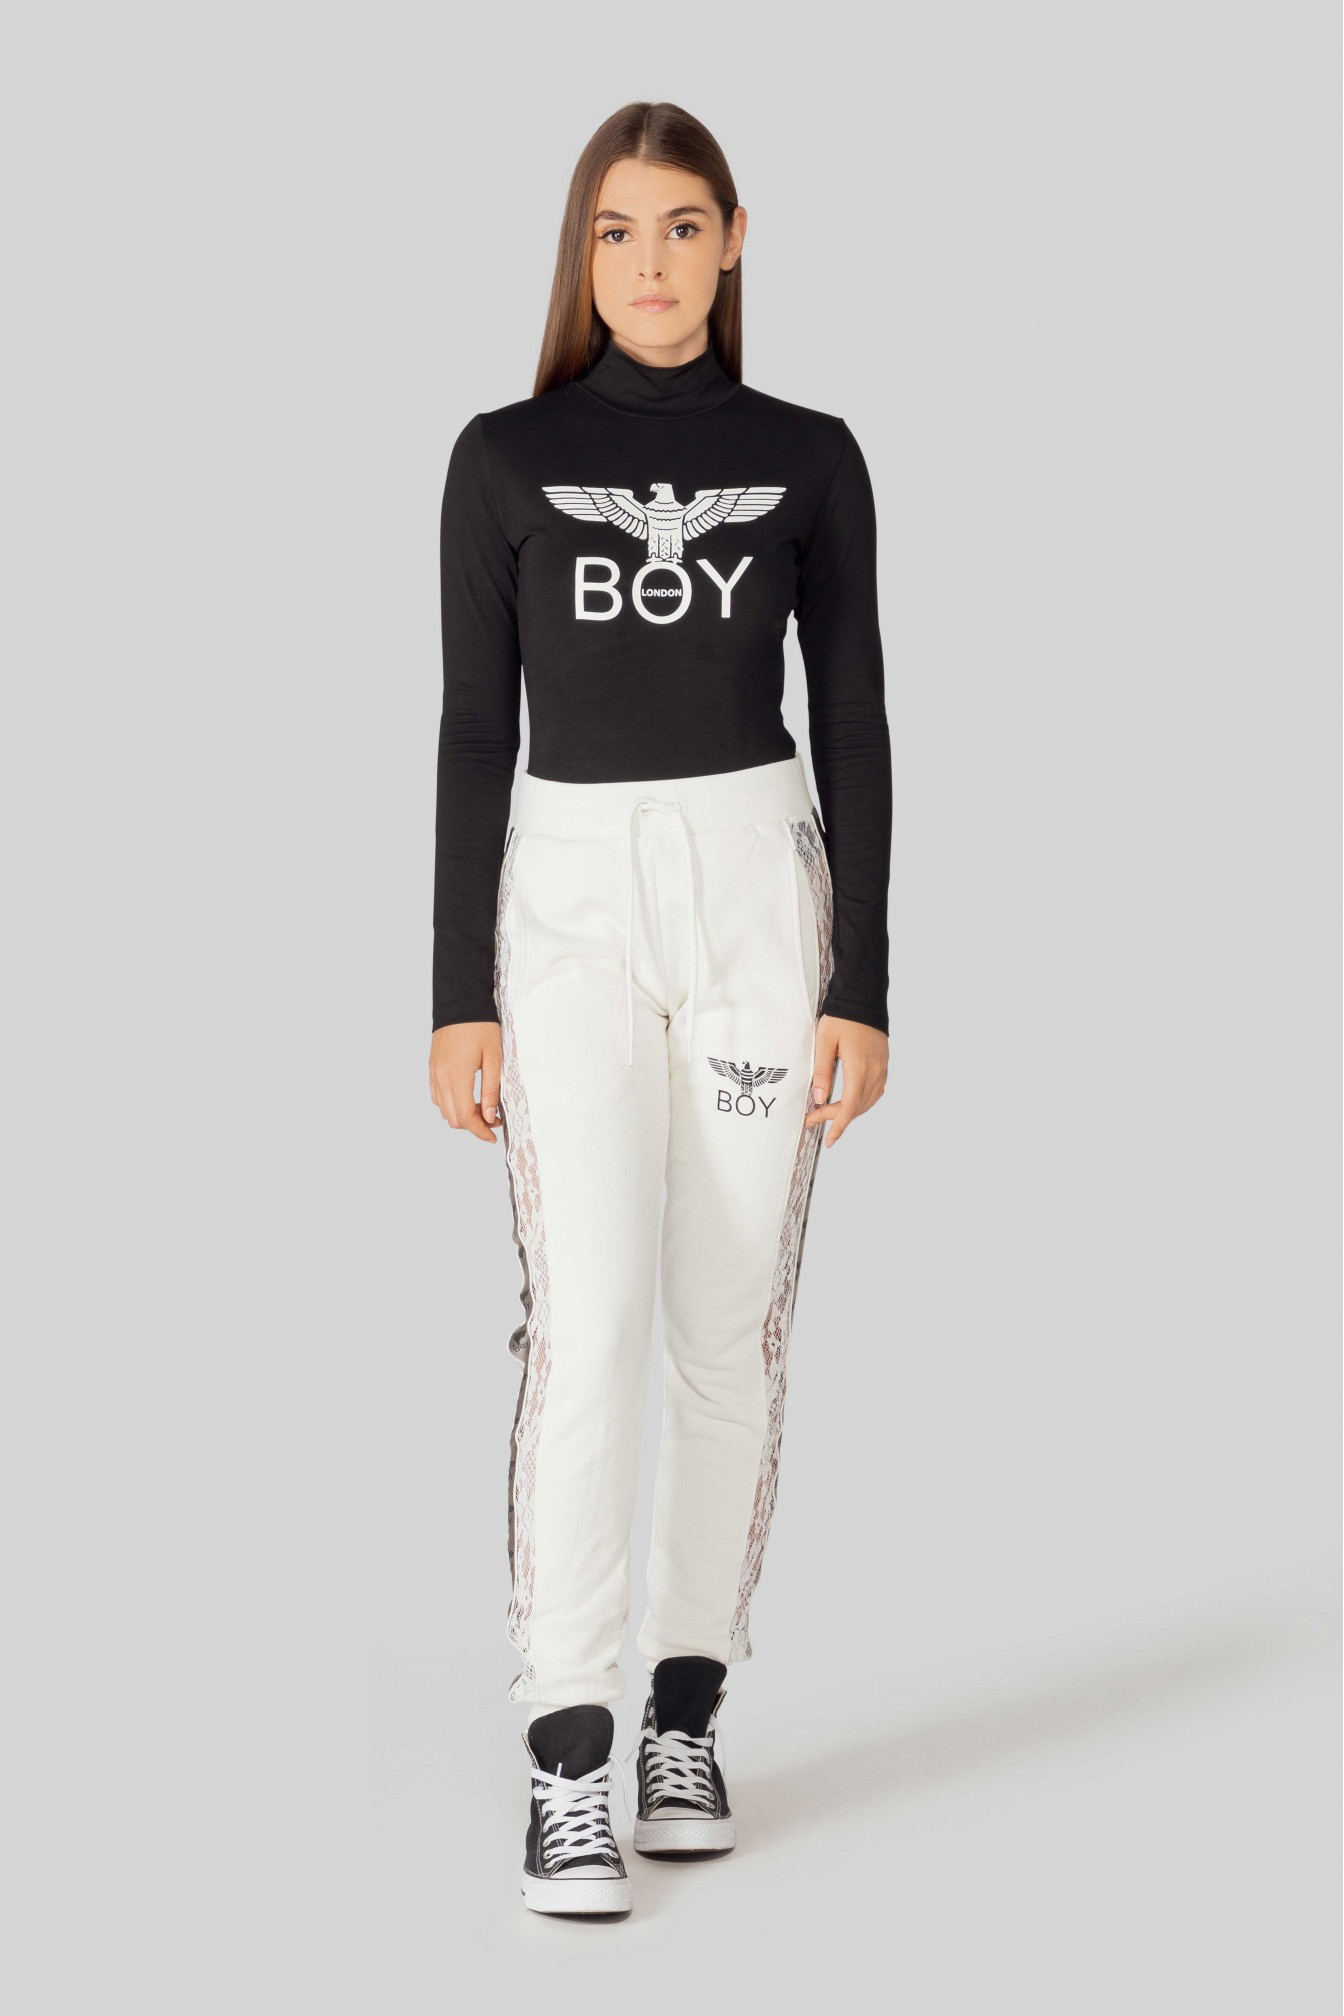 BODY - BLD2615 - BOY LONDON